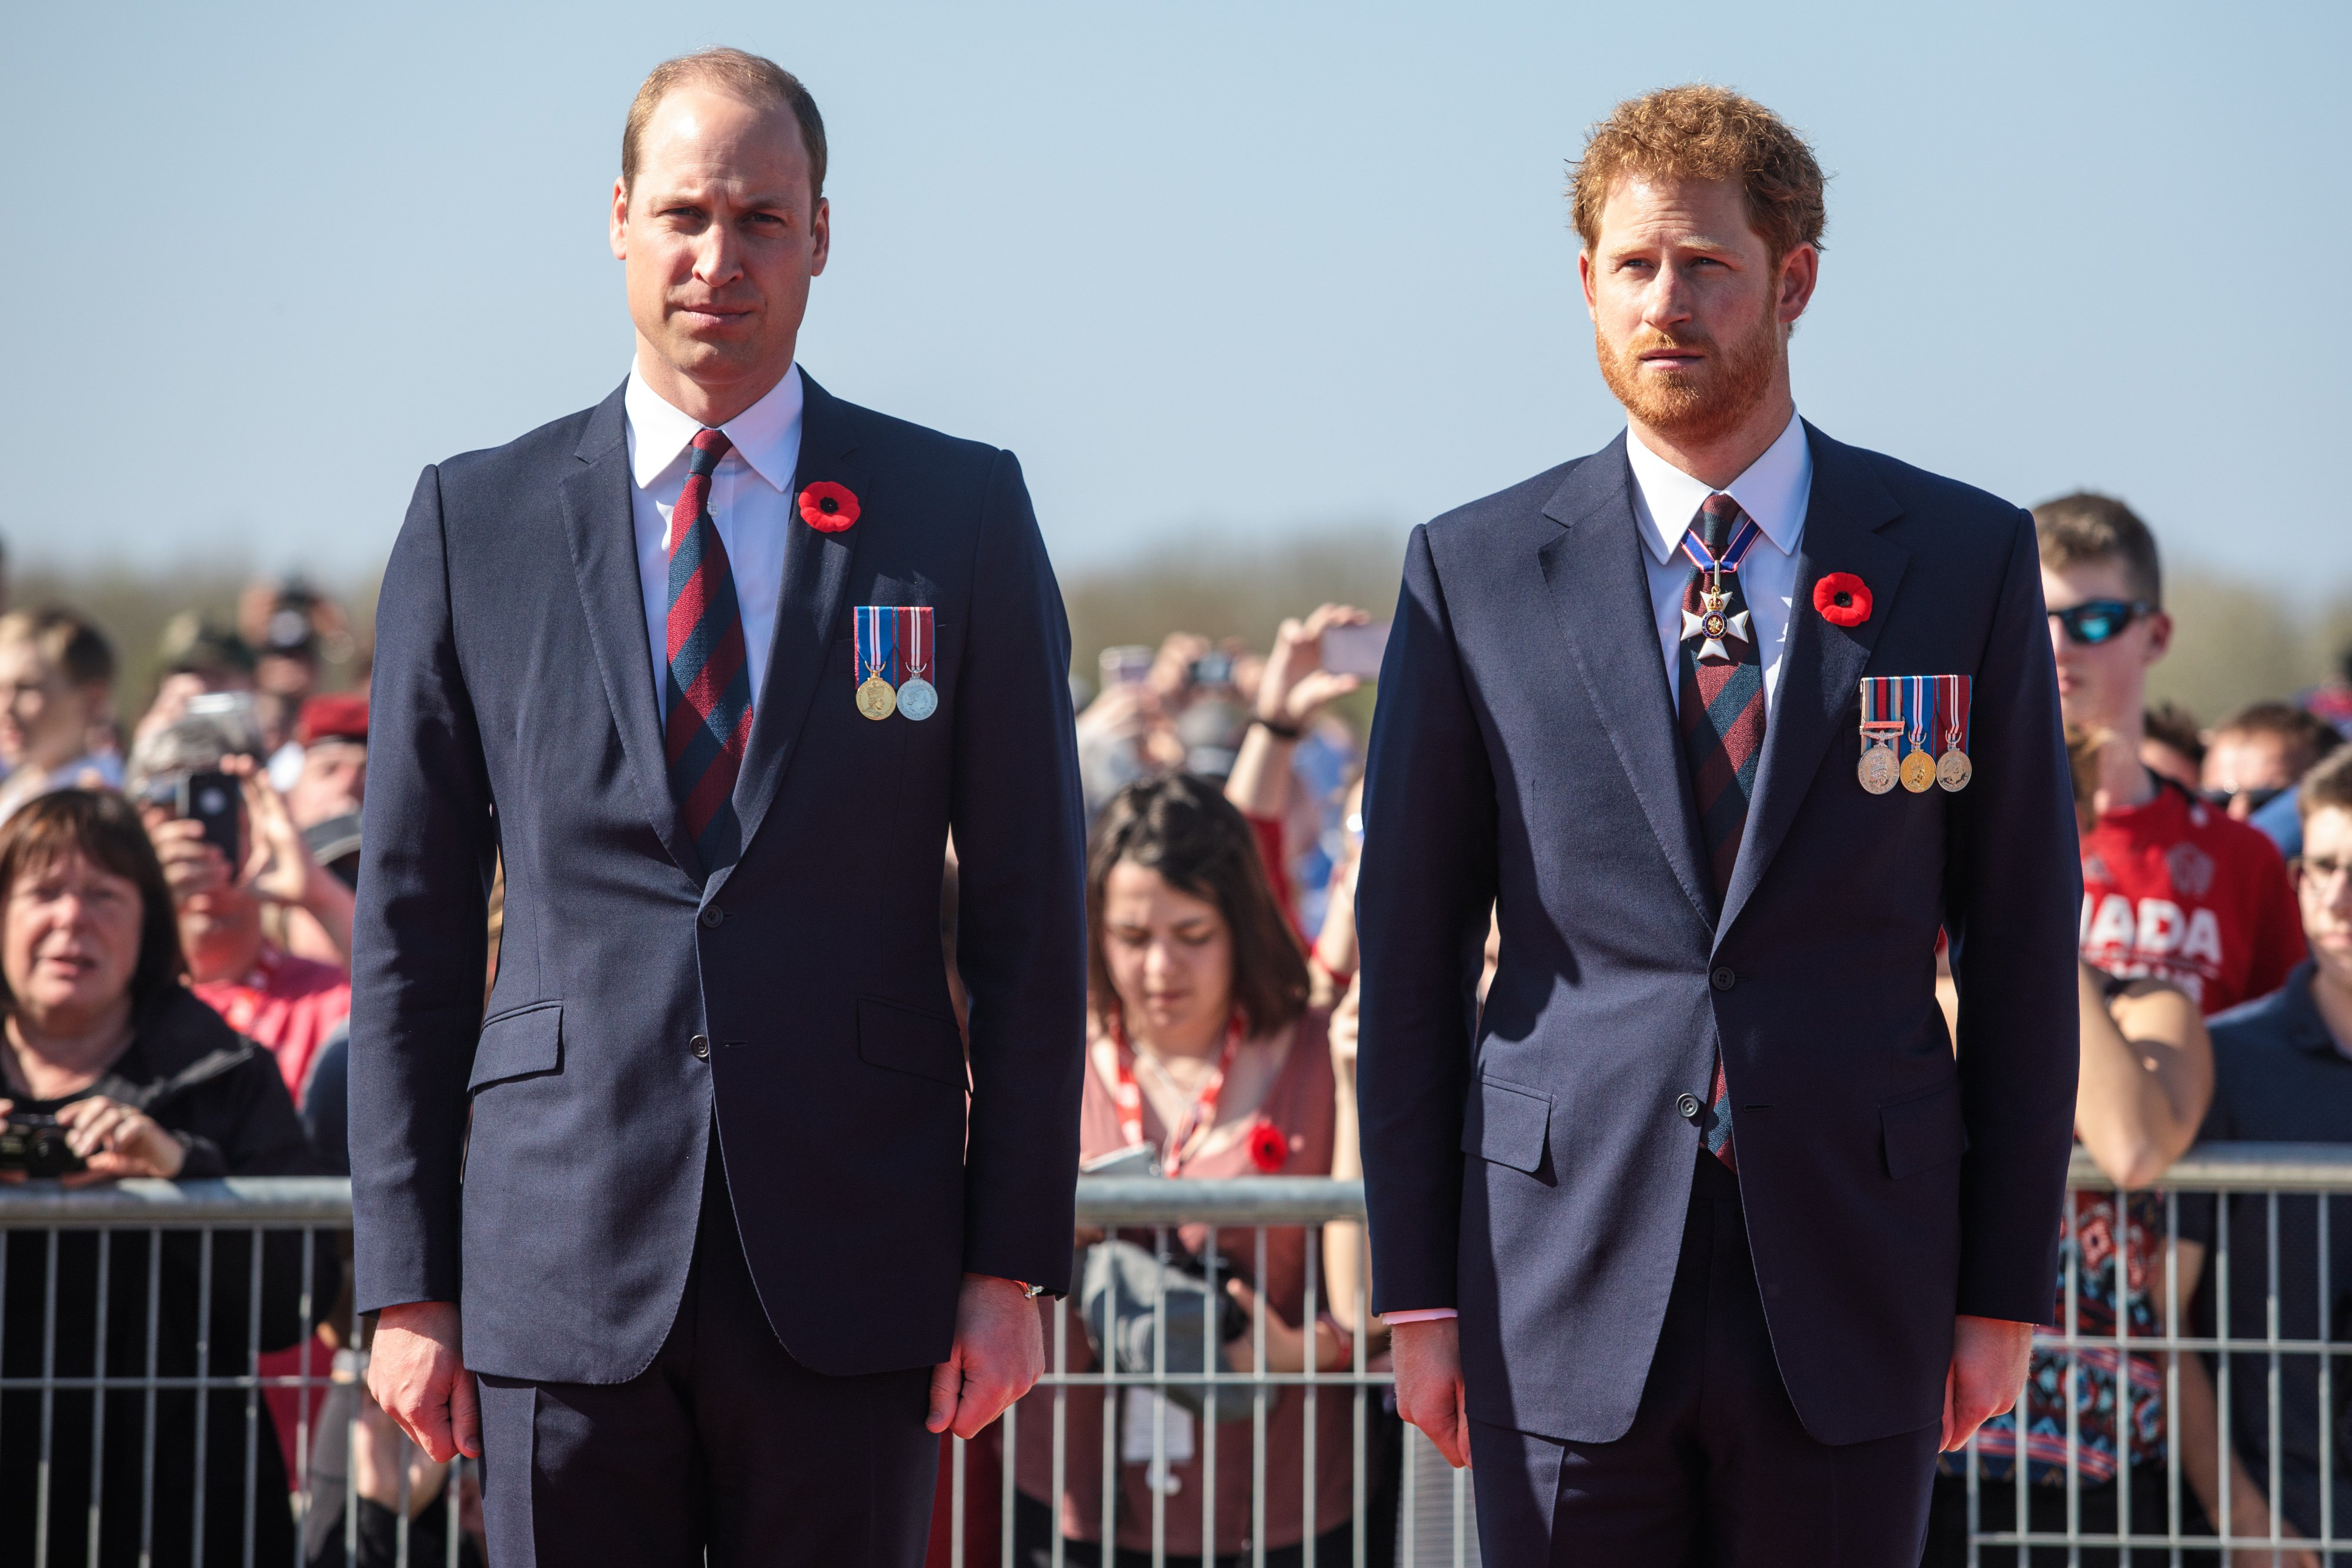 Prince William and Prince Harry arrive at the Canadian National Vimy Memorial on April 9, 2017 in Vimy, France   Photo: Getty Images